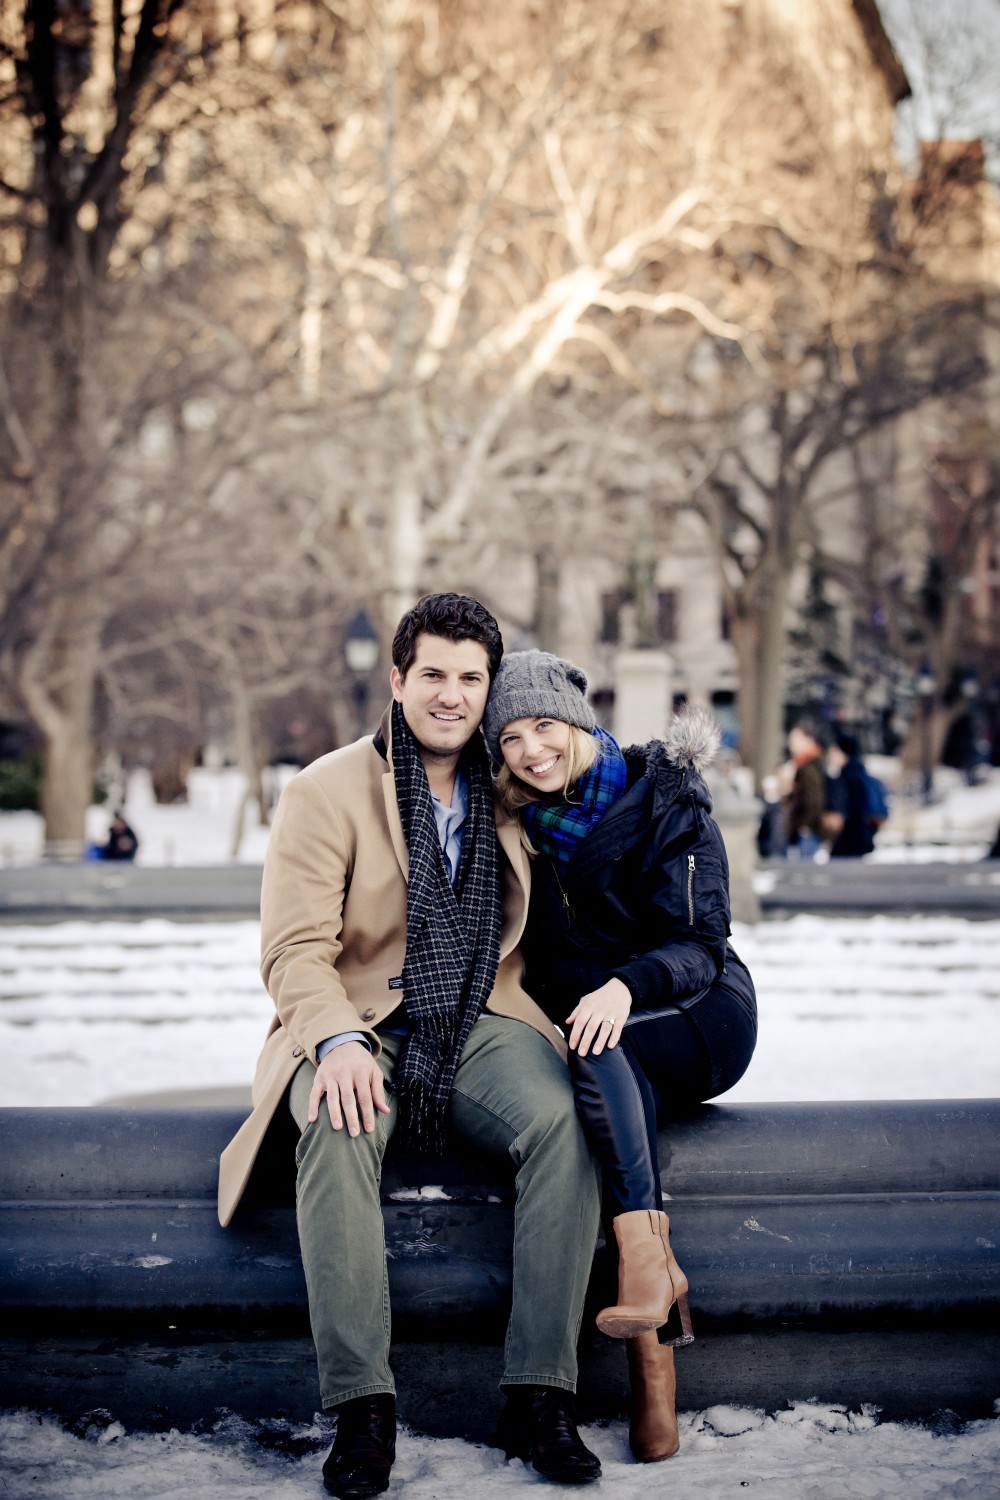 Image 4 of Jessica and Joe's Proposal in Washington Square Park